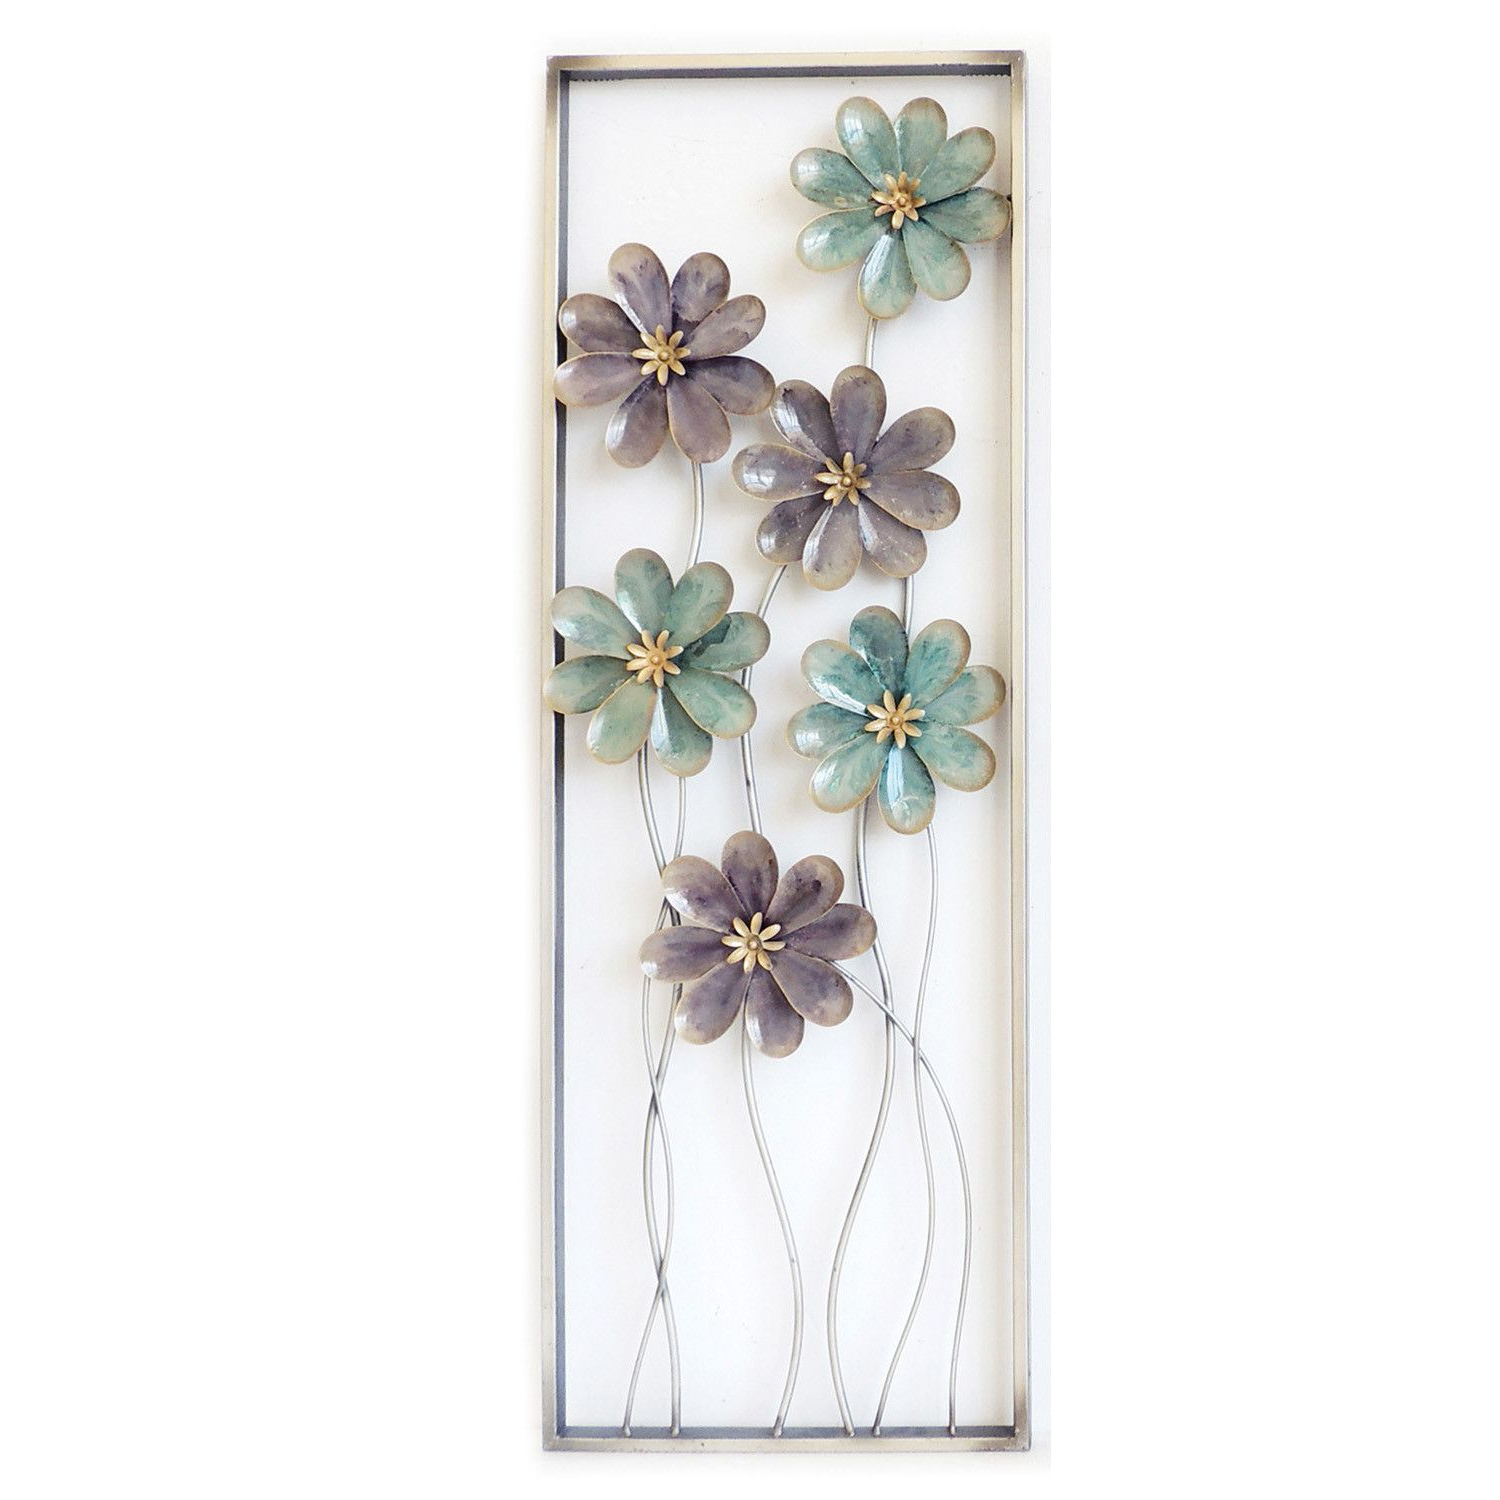 Sign Wall Decor By Charlton Home Intended For Most Recently Released 6 Flowers On Stem Wall Decor (View 11 of 20)